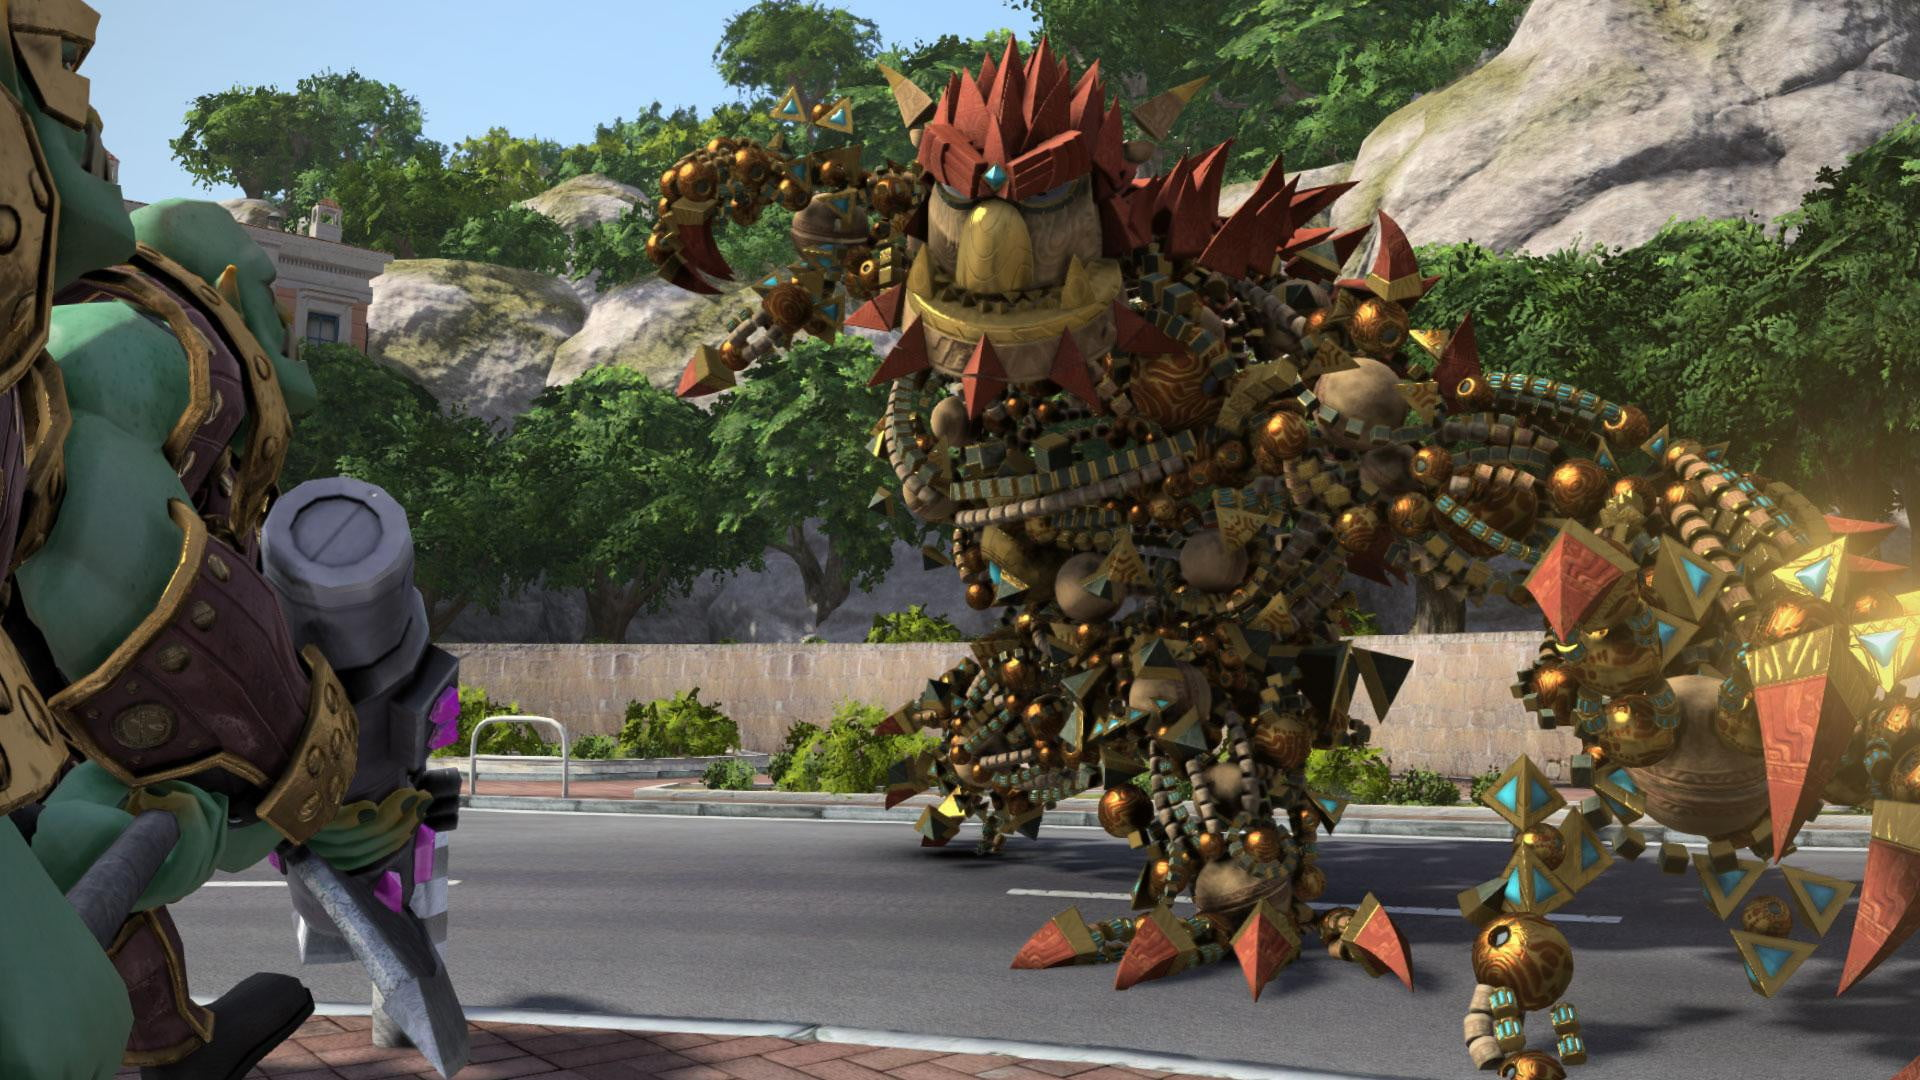 February's PlayStation Plus lineup includes the G.O.A.T. Knack screenshot